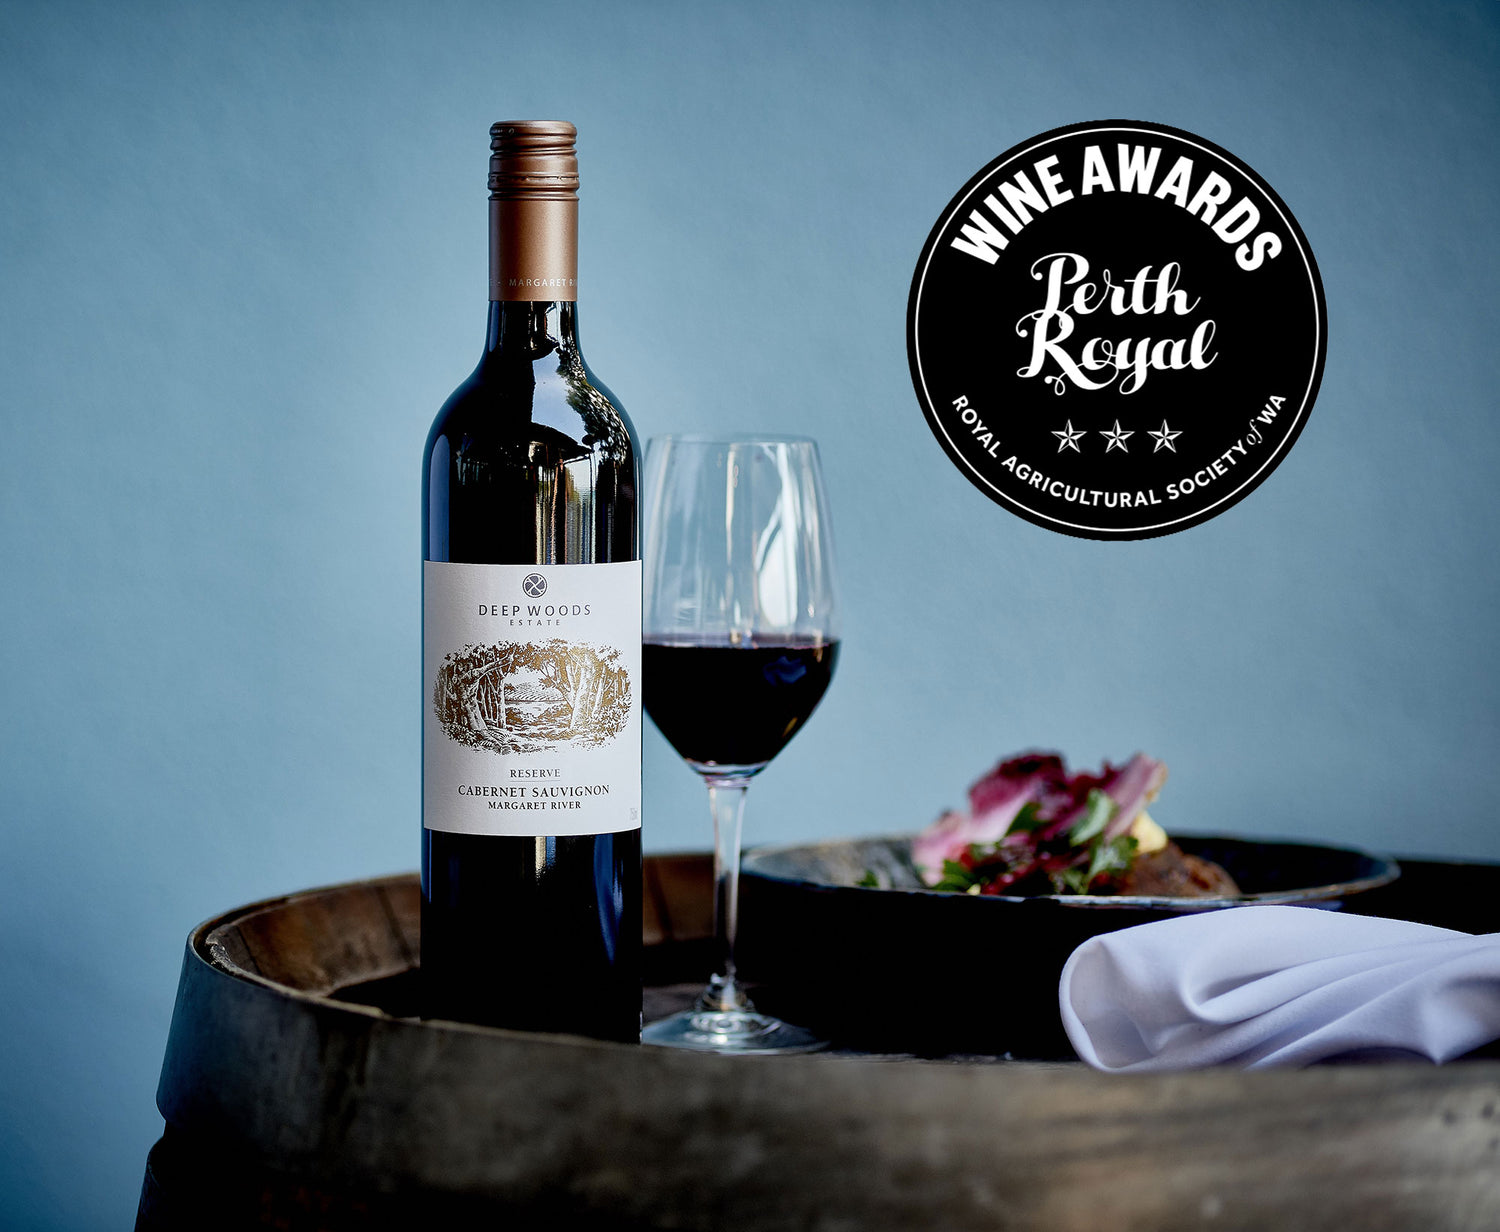 deep woods reserve is top cabernet at perth royal wine awards